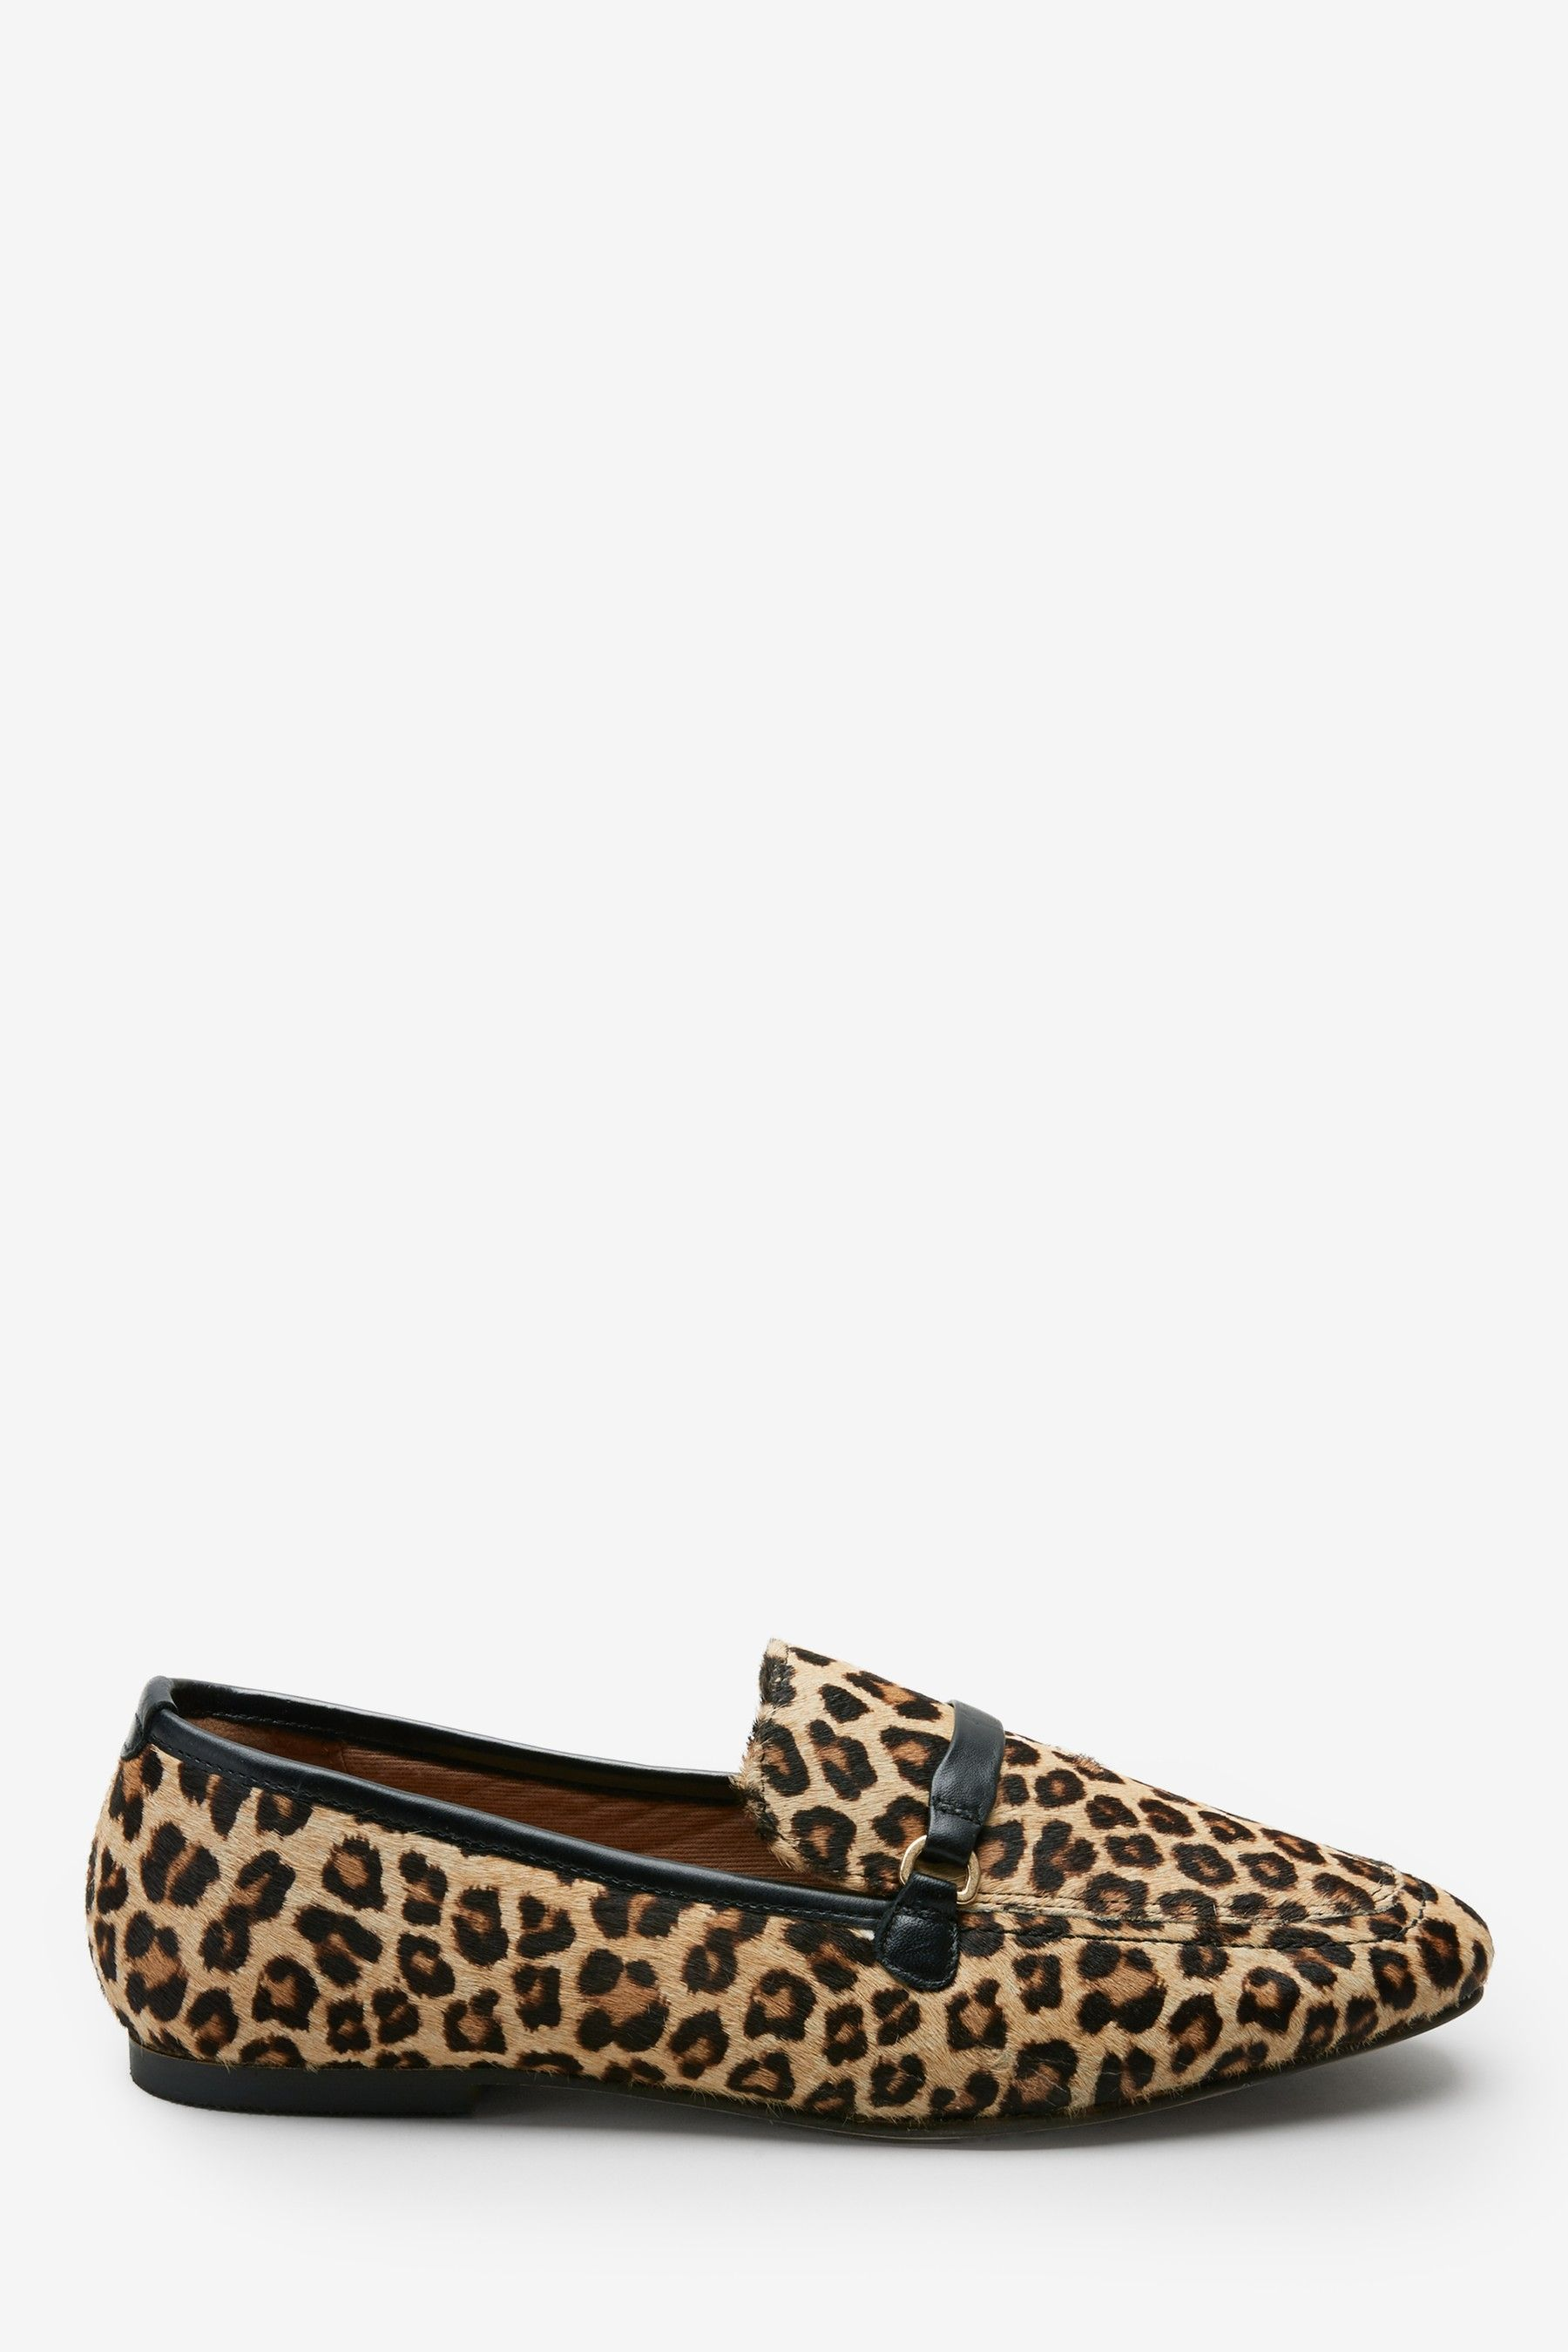 Leopard Print Leather Loafers | Leather